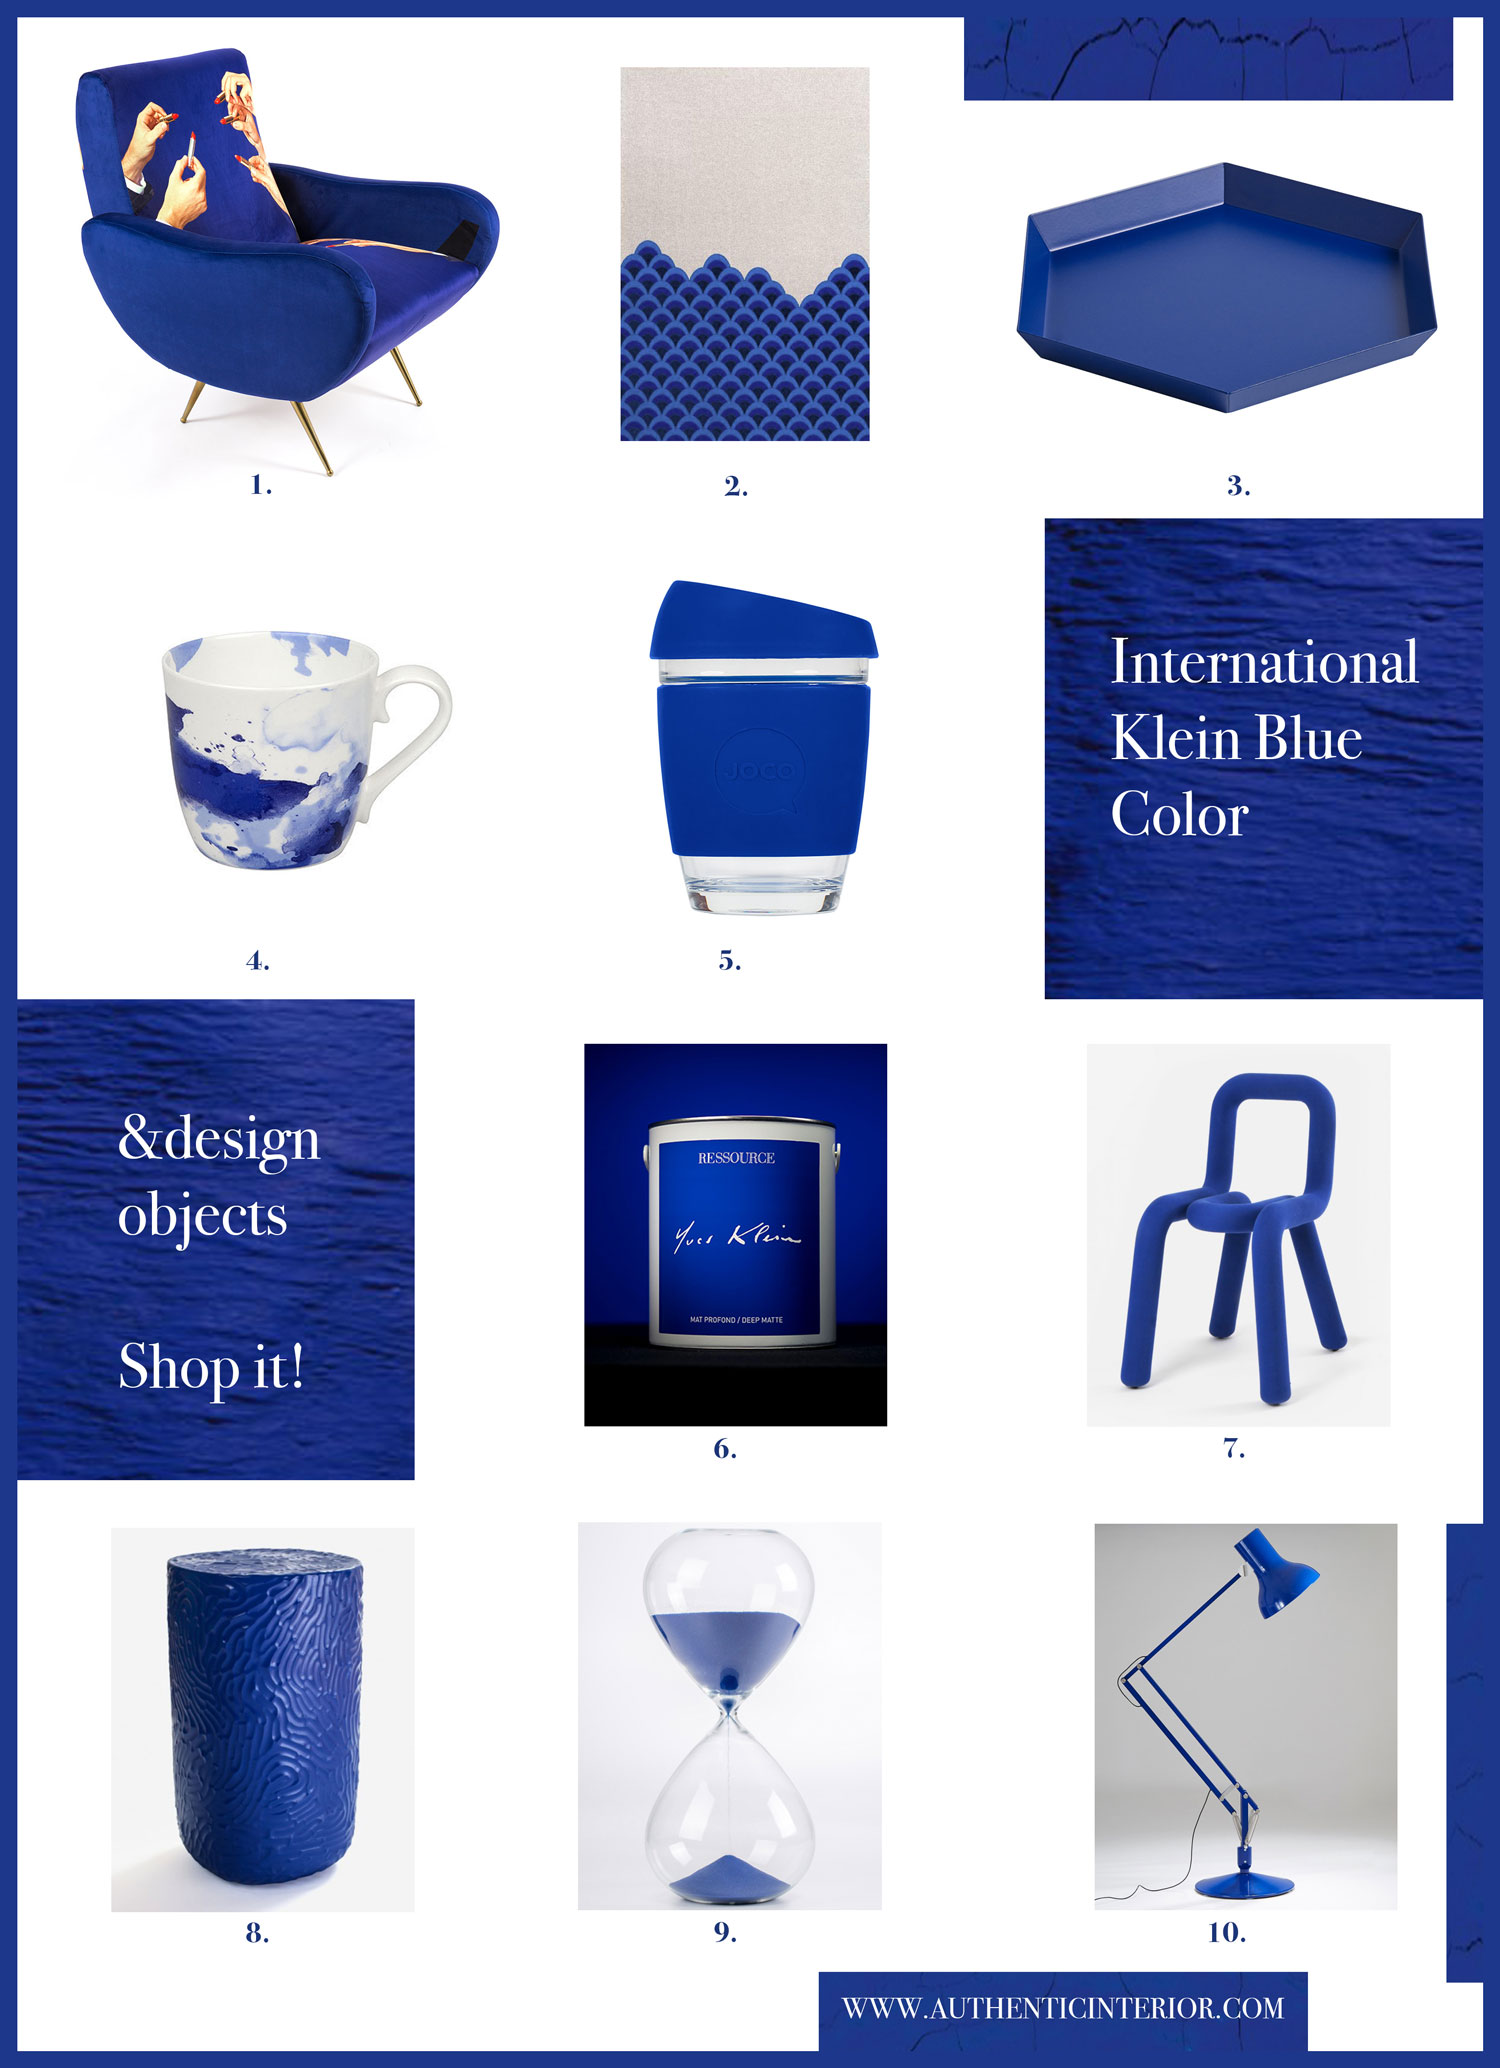 Powerful Yves Klein Blue New Ressource Paint Color And Design Inspiration - Authentic Interior DESIGN STUDIO&BLOG